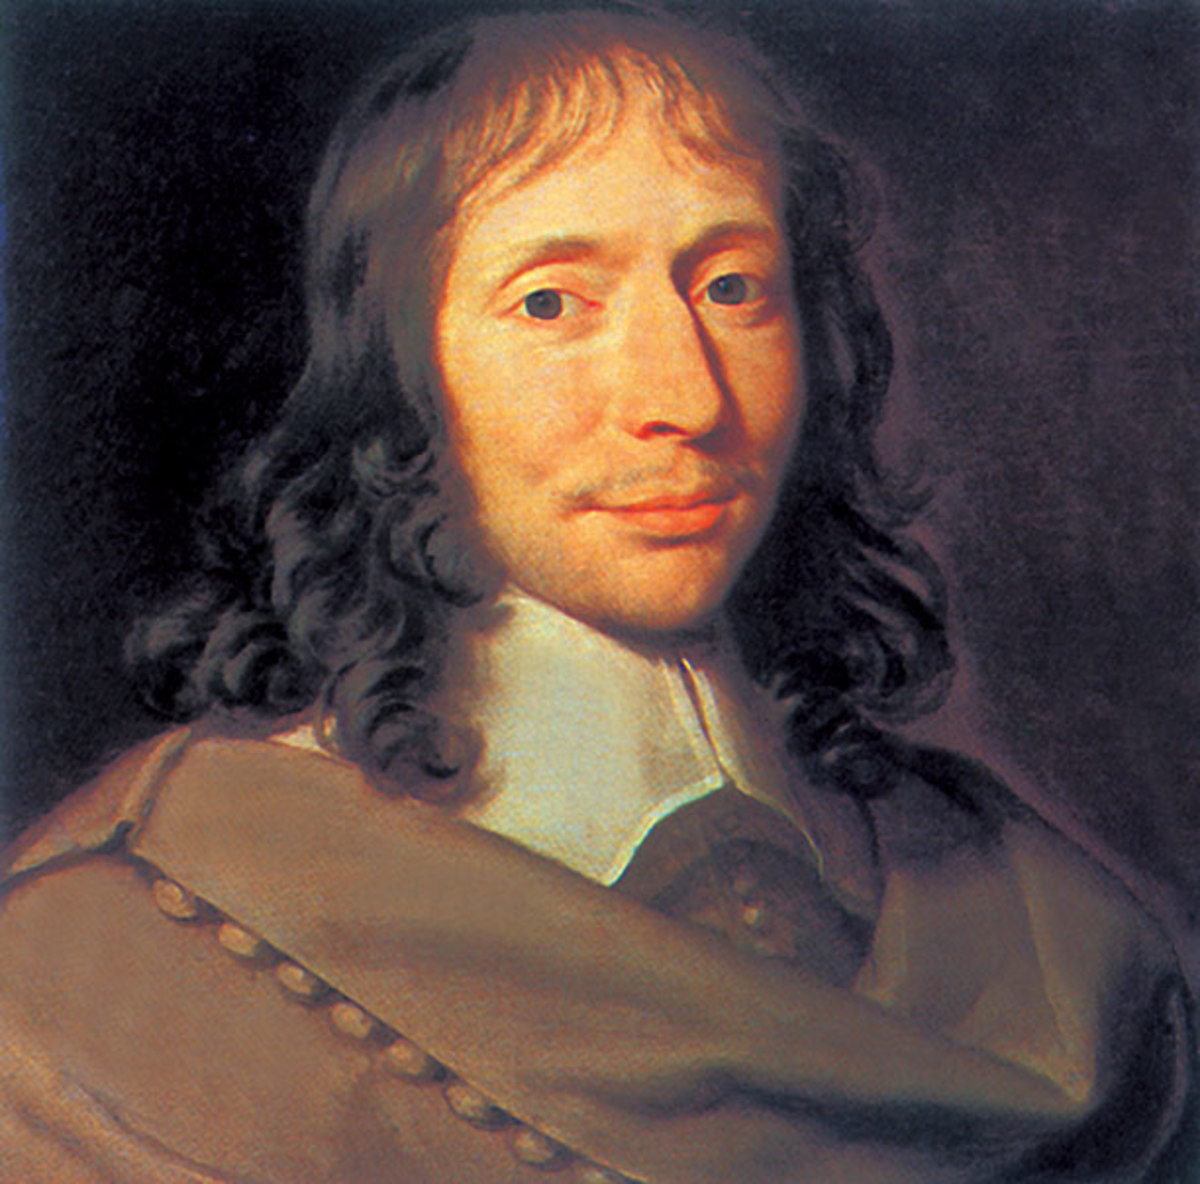 Brief Biography of Blaise Pascal